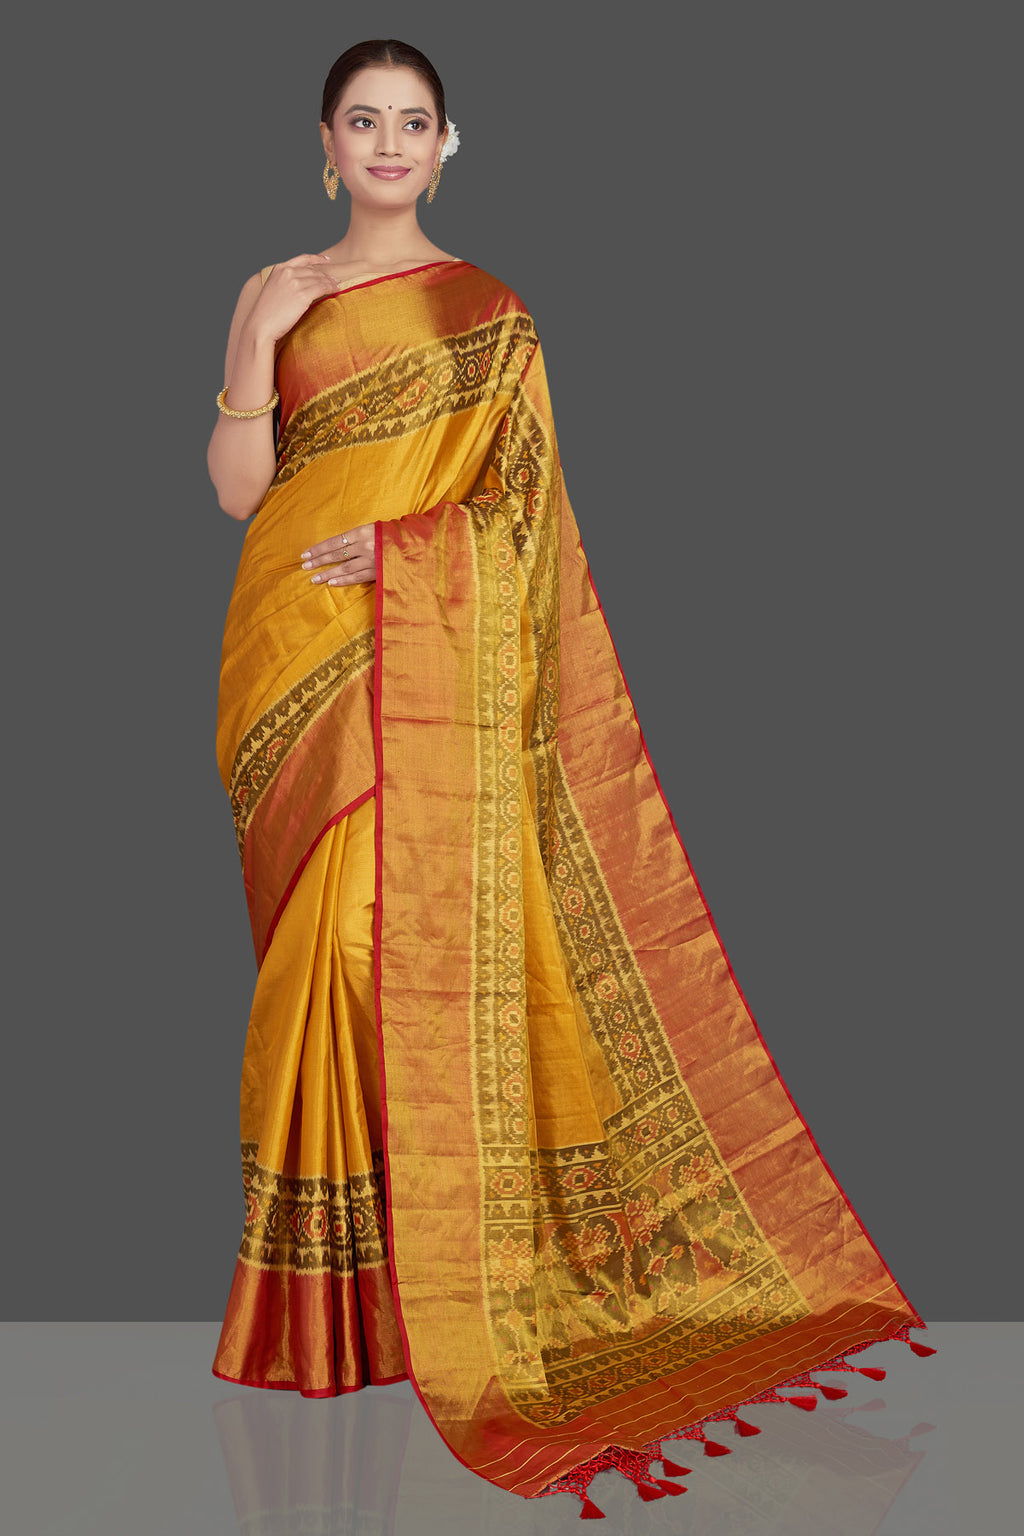 Buy stunning yellow ikkat Patola silk sari online in USA with red golden zari border. Make a fashion statement on weddings and special occasions in stunning silk sarees, Patola sarees, handwoven silk sarees, designer saris from Pure Elegance Indian clothing store in USA.-full view